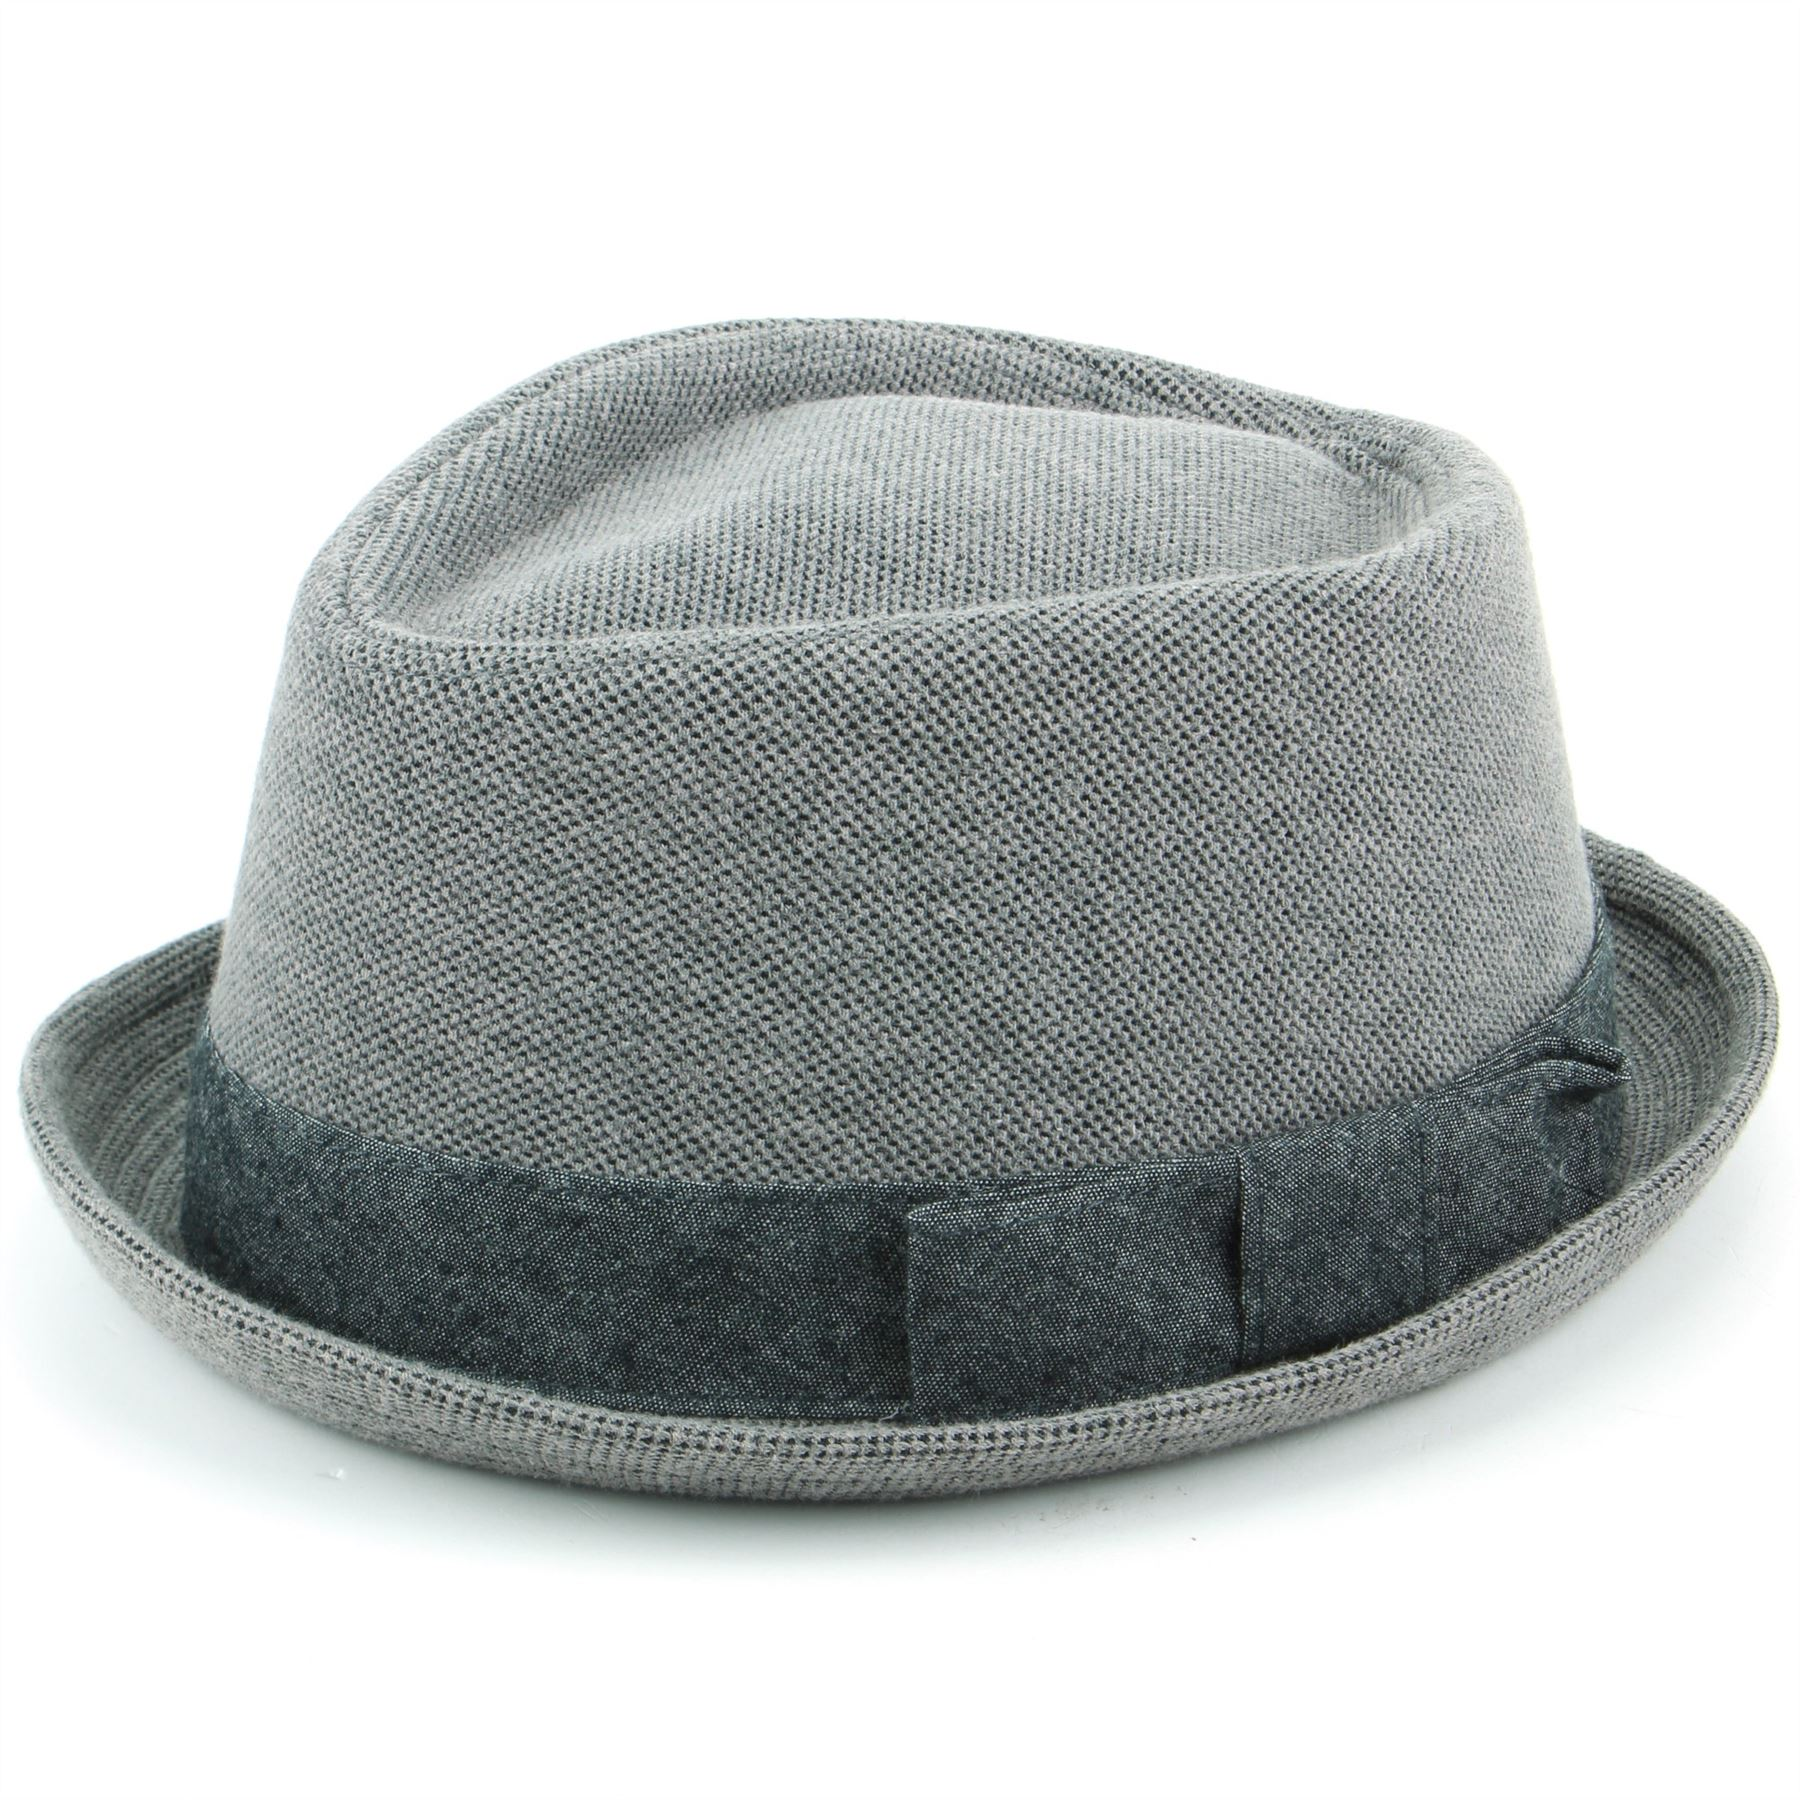 150a2fe25e21e Hat Porkpie Pork Pie Cotton GREY Trilby Mens Ladies Diamond Crown ...